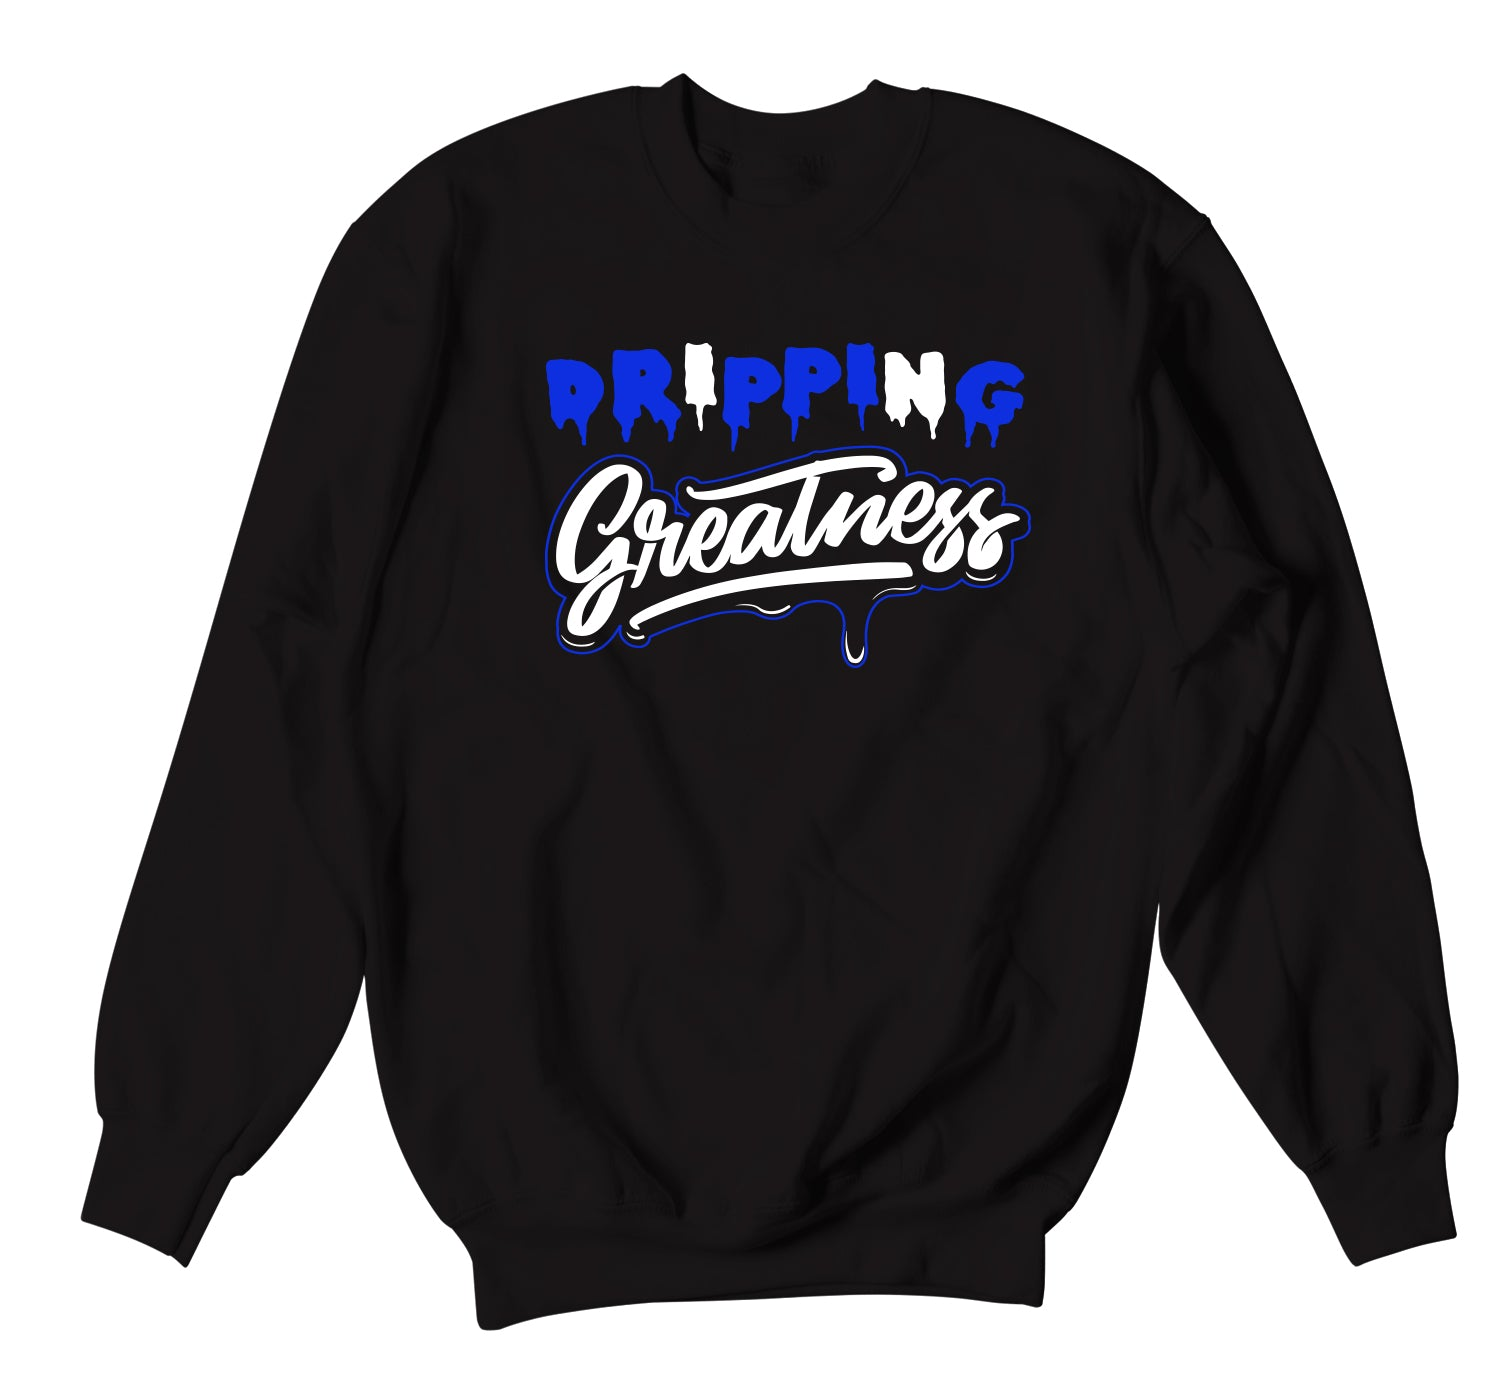 game royal Jordan 12s matches crewneck sweaters designed to match